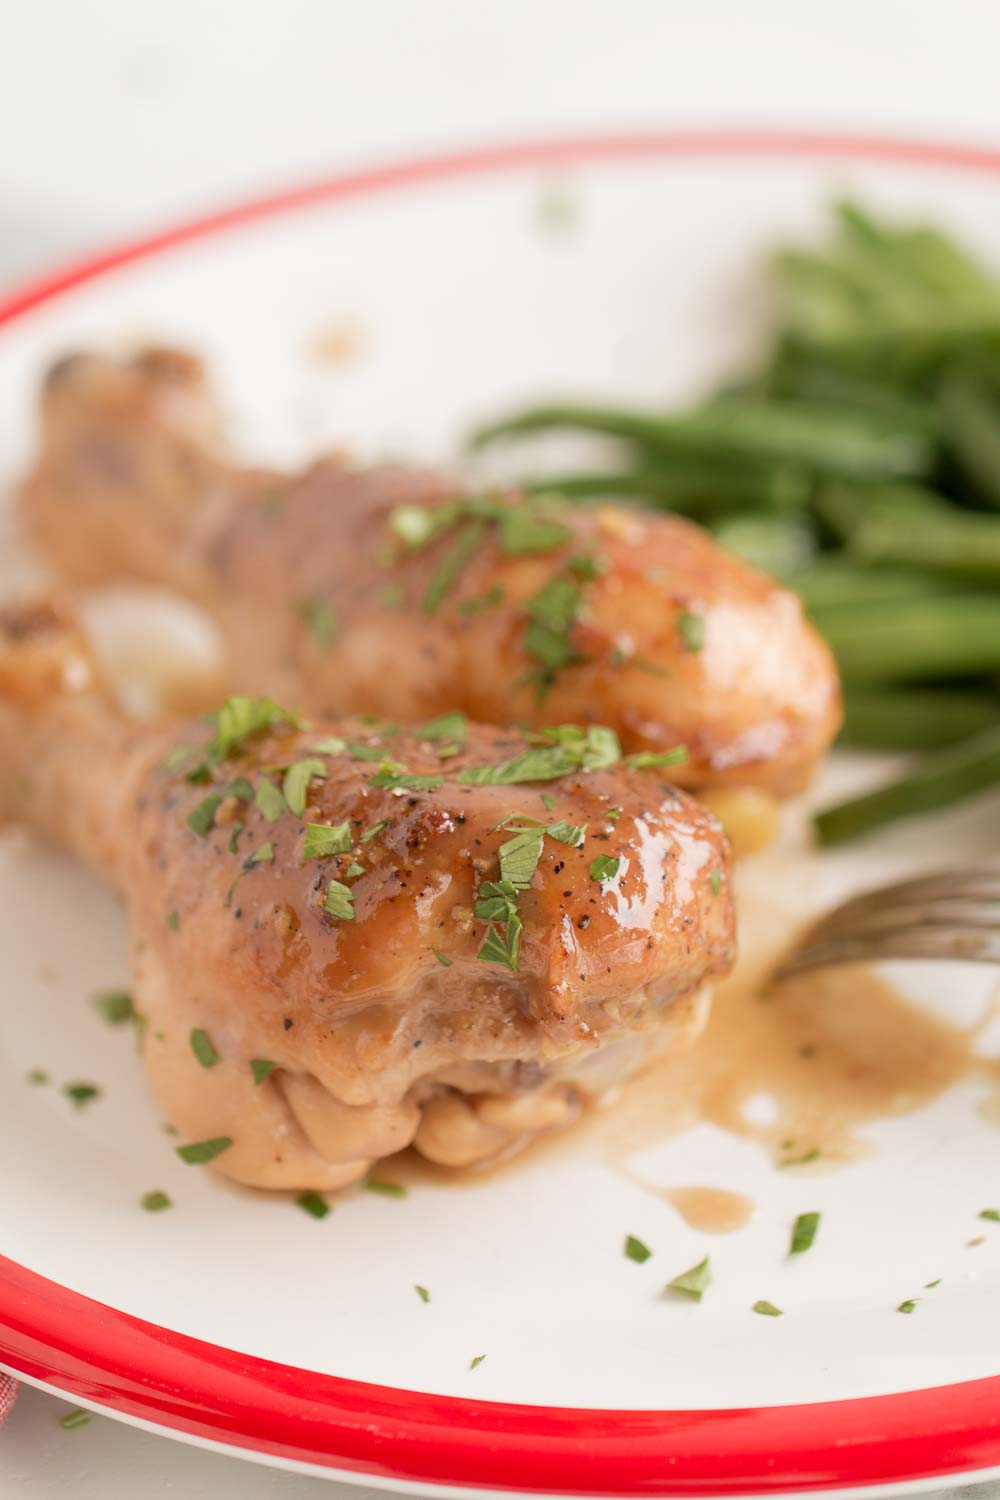 This Honey Balsamic Chicken Drumsticks recipe is a delicious and fast dinner idea you can have on your table in under 1 hour! This chicken recipe can be made in the oven or the instant pot! Serve it with buttered noodles and green beans for a delicious meal!